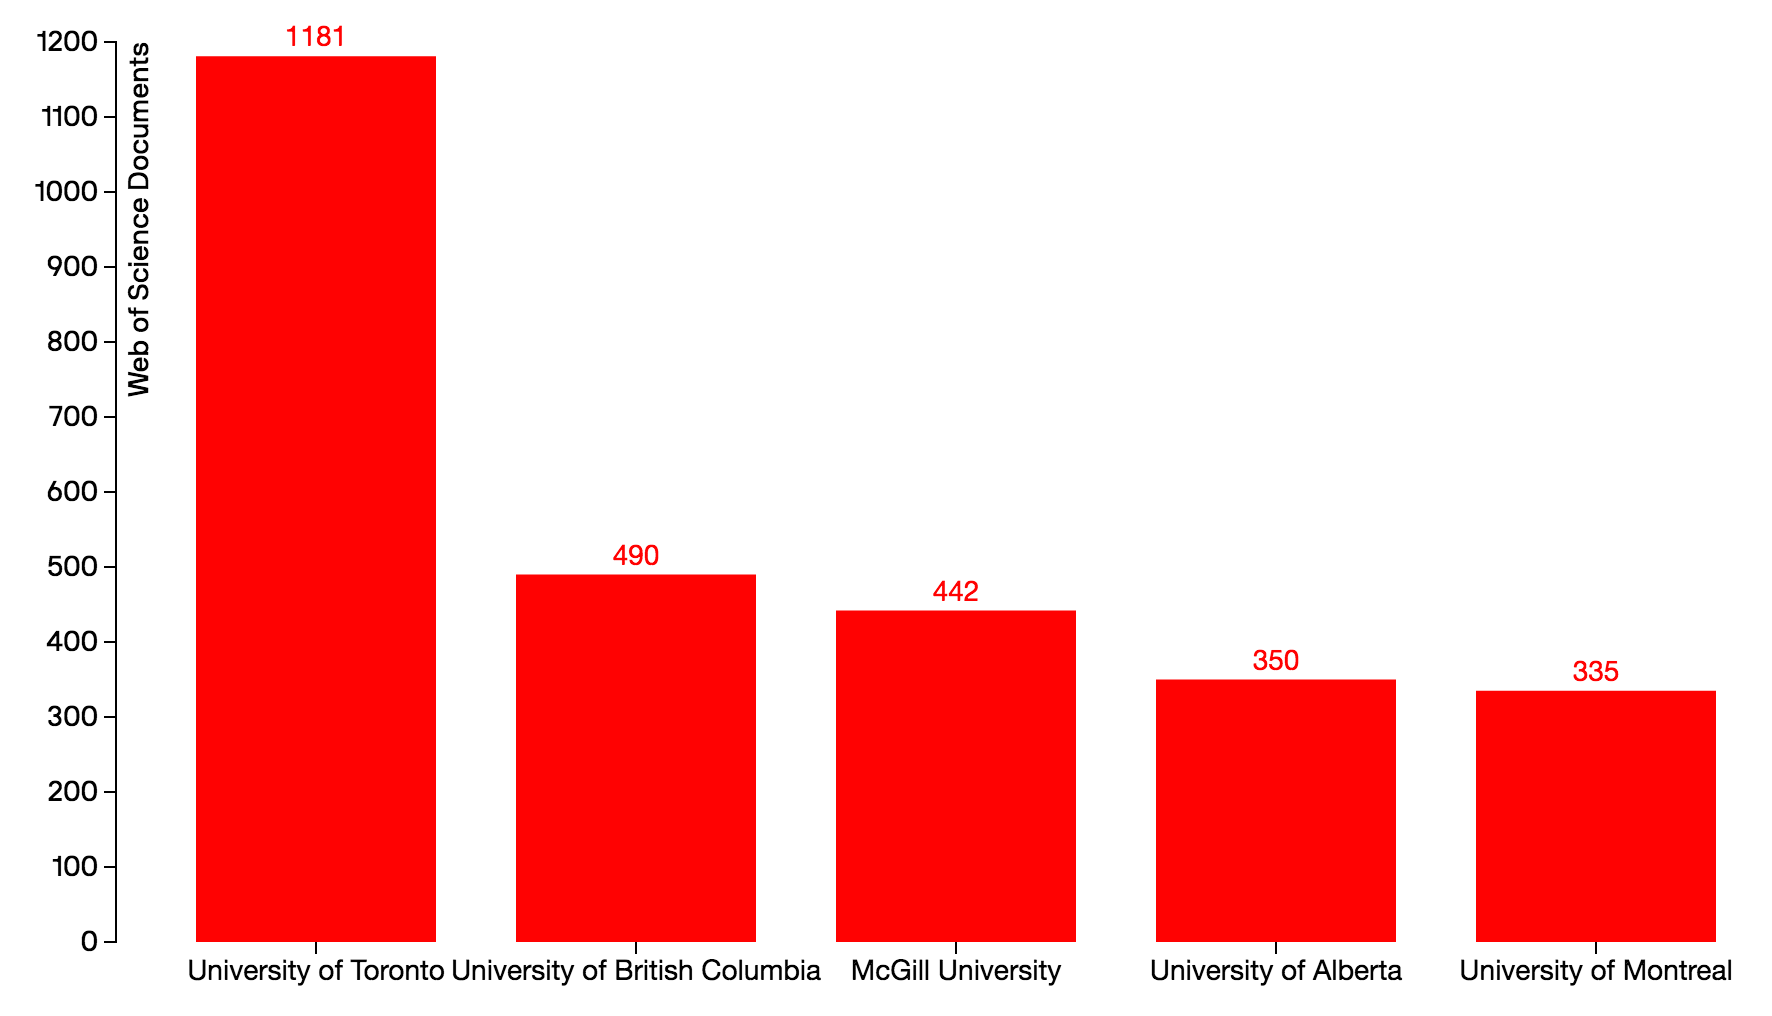 Number of Articles in Top Journals, 2015 Canada Top 5 Organizations: U of T, UBC, McGill, U of A, University of Montreal